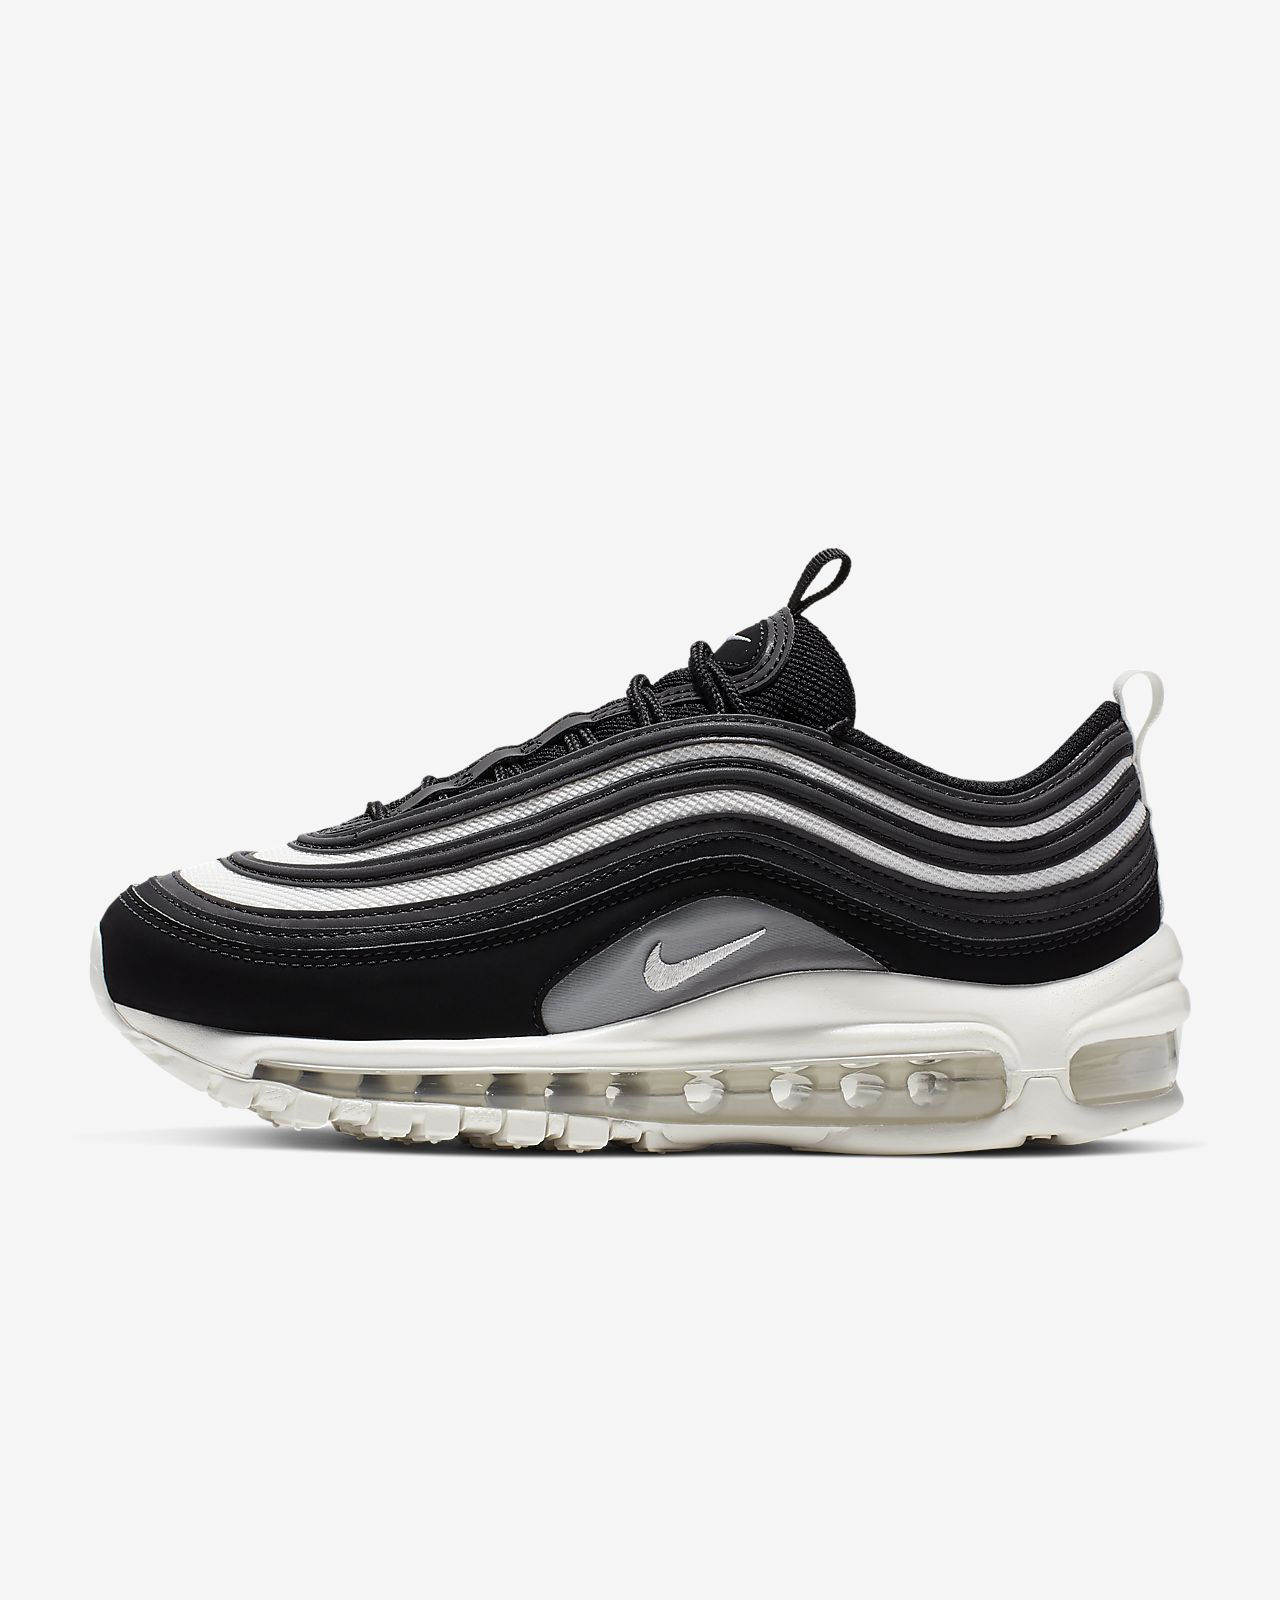 c8738b08f8ffd Nike Air Max 97 Women's Shoe. Nike.com GB